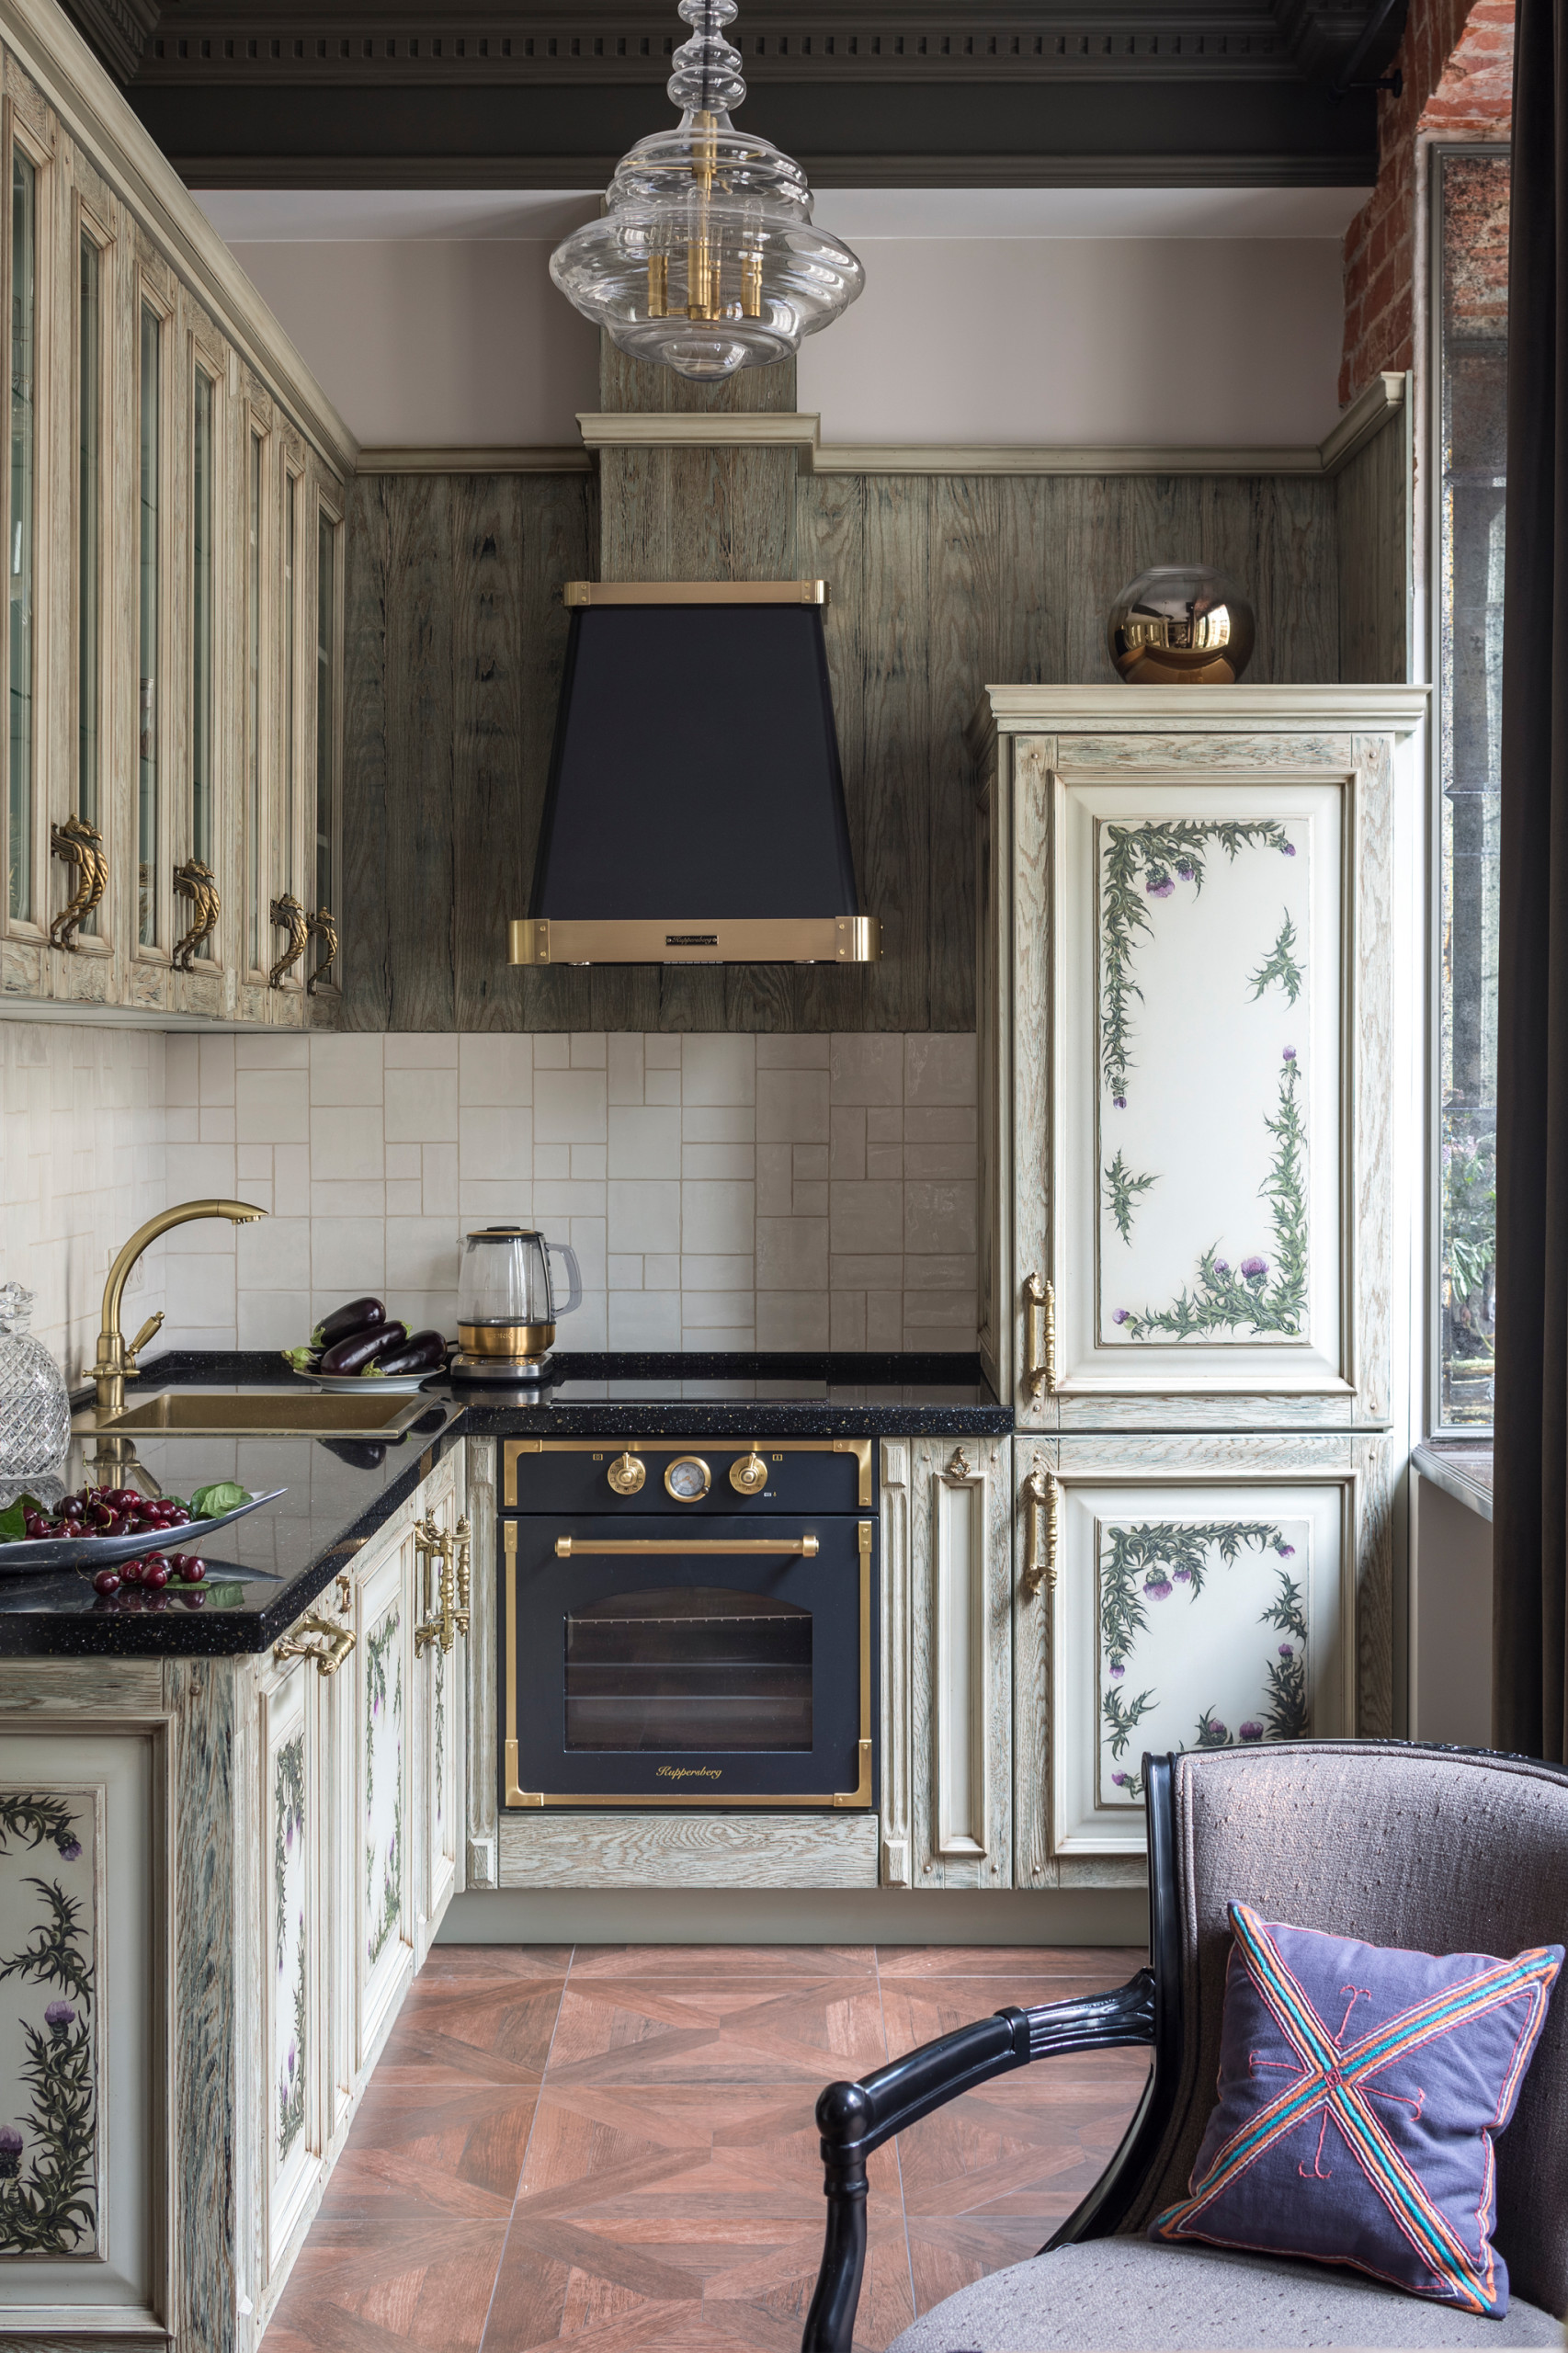 5 Beautiful Victorian Kitchen Pictures & Ideas - November, 5